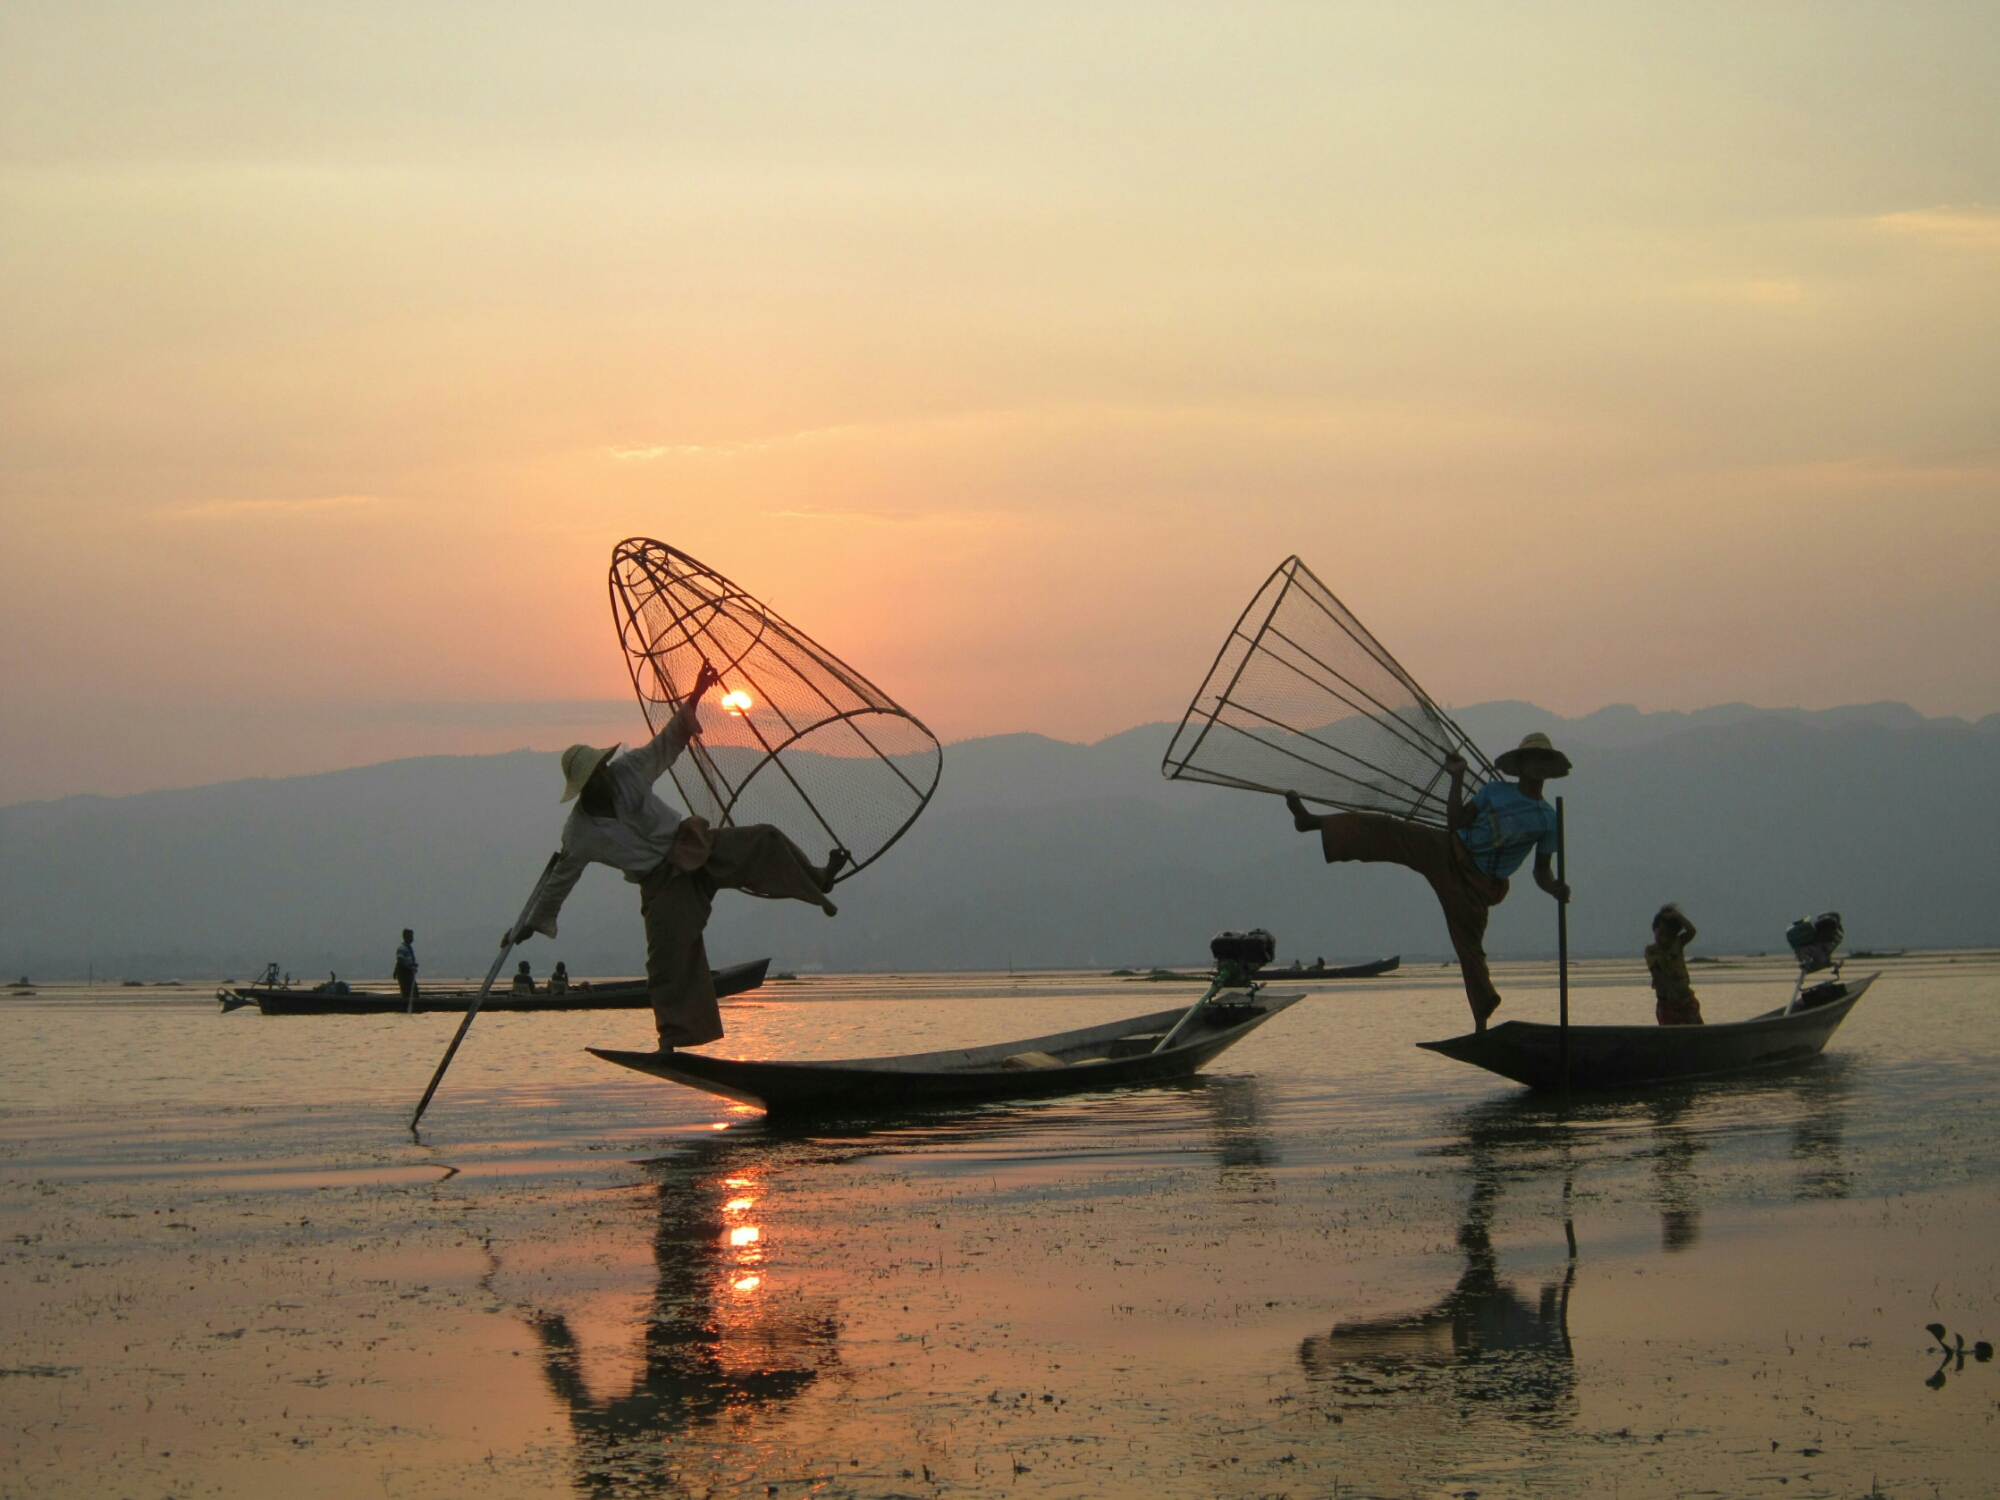 Fisherman pose at sunset on Inle Lake, Myanmar